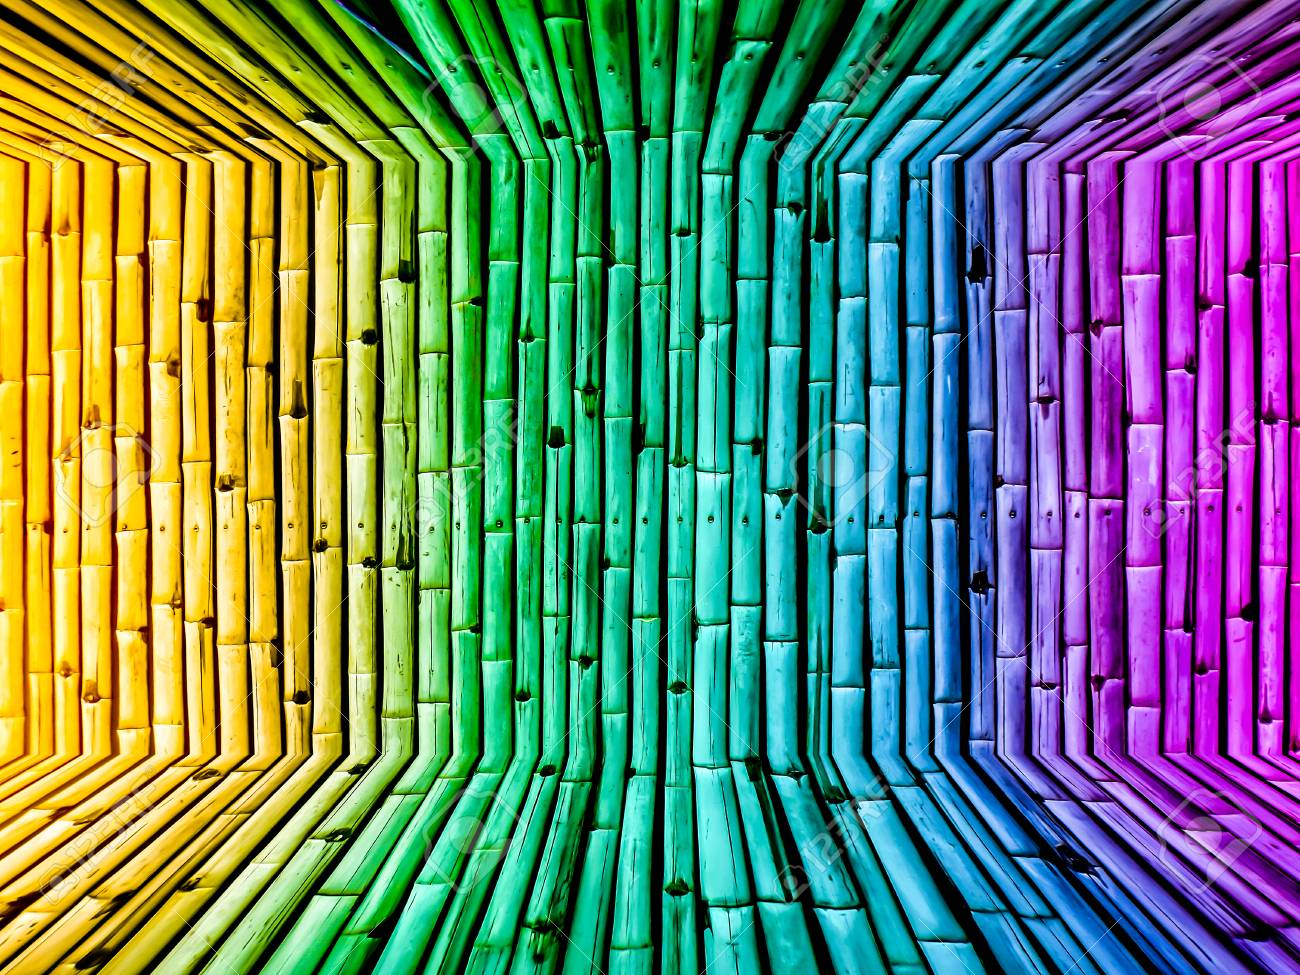 Bamboo Dimension Gradient Background Wallpaper Vintage From Nature Stock Photo